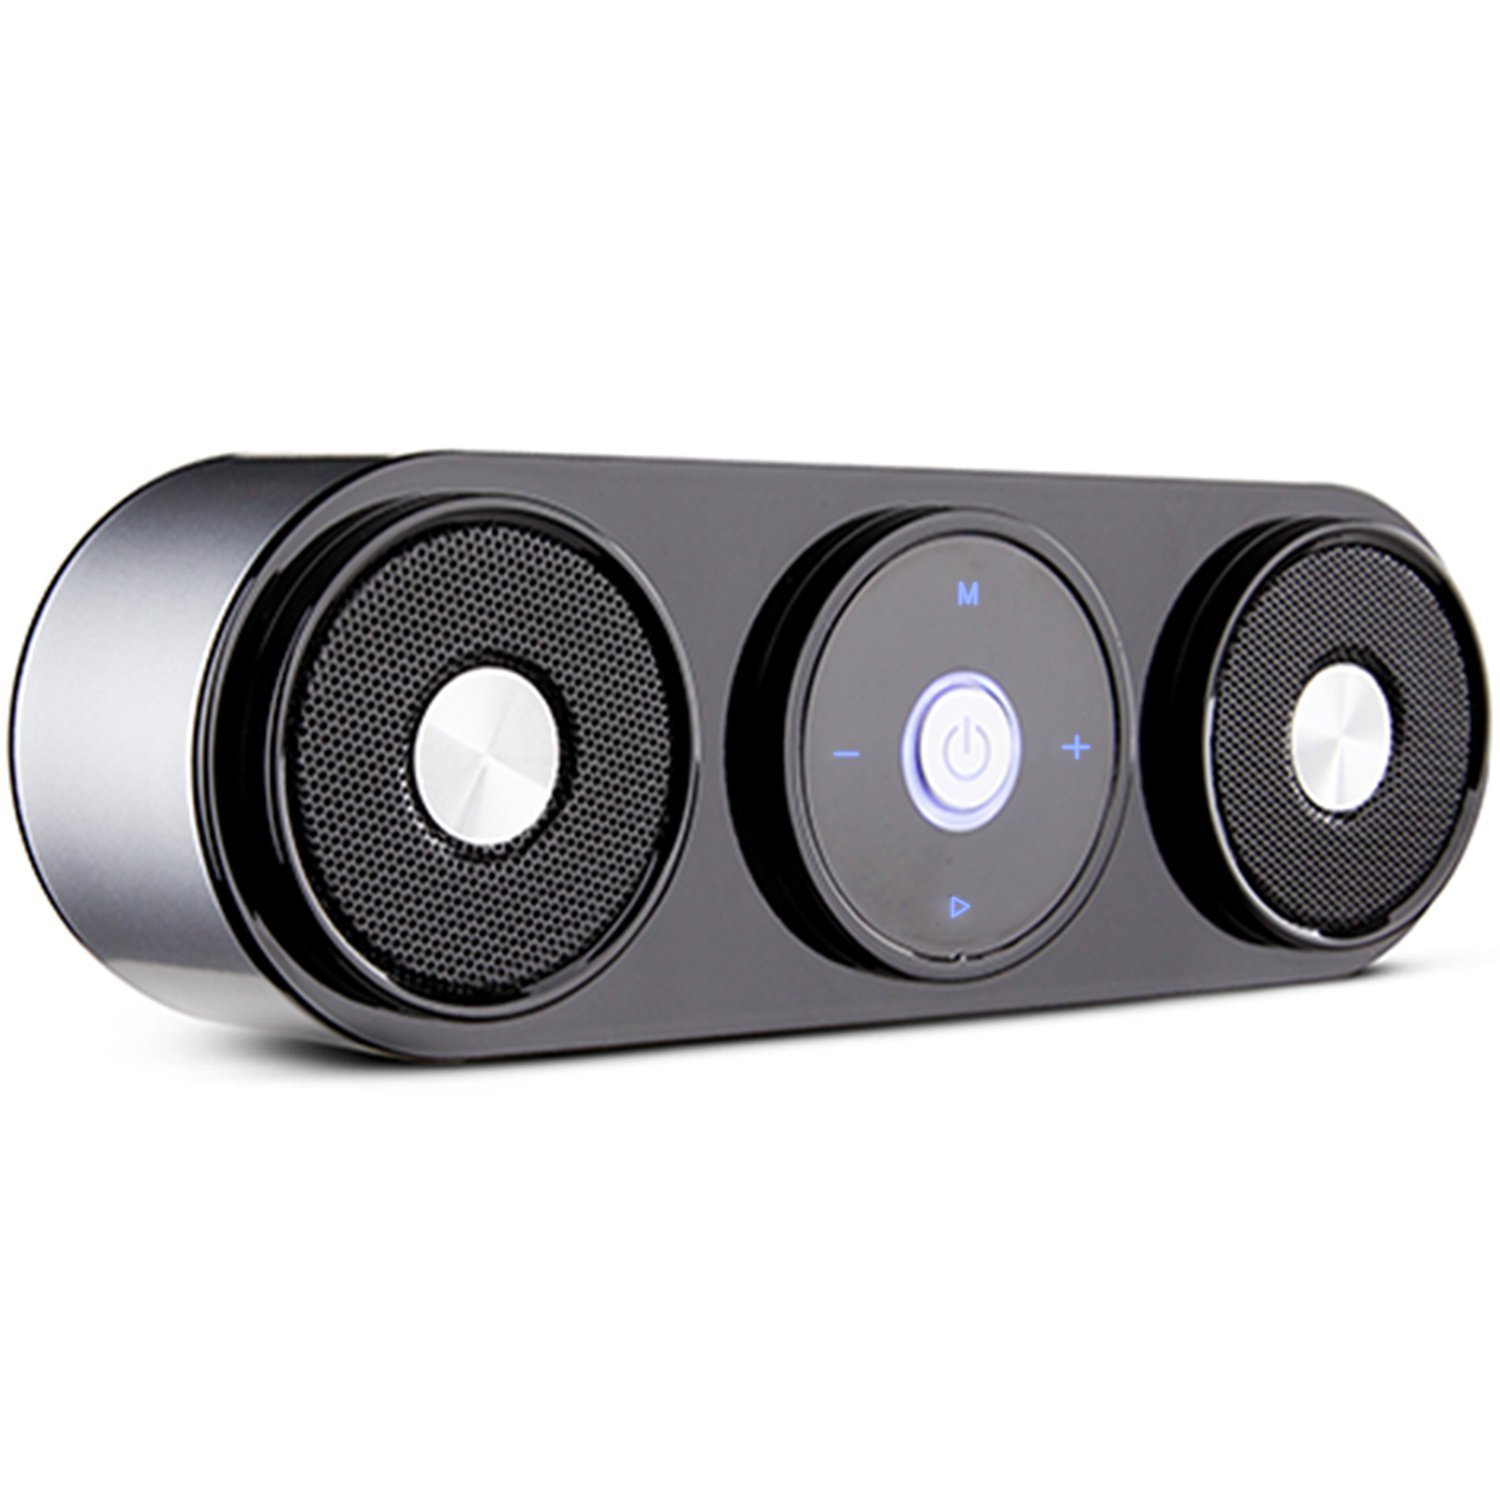 Bluetooth Speakers, ZENBRE Z3 10W Portable Wireless Speakers with 20h Playtime, Computer Speaker with Dual-Driver Enhanced Bass Resonator (Silver)